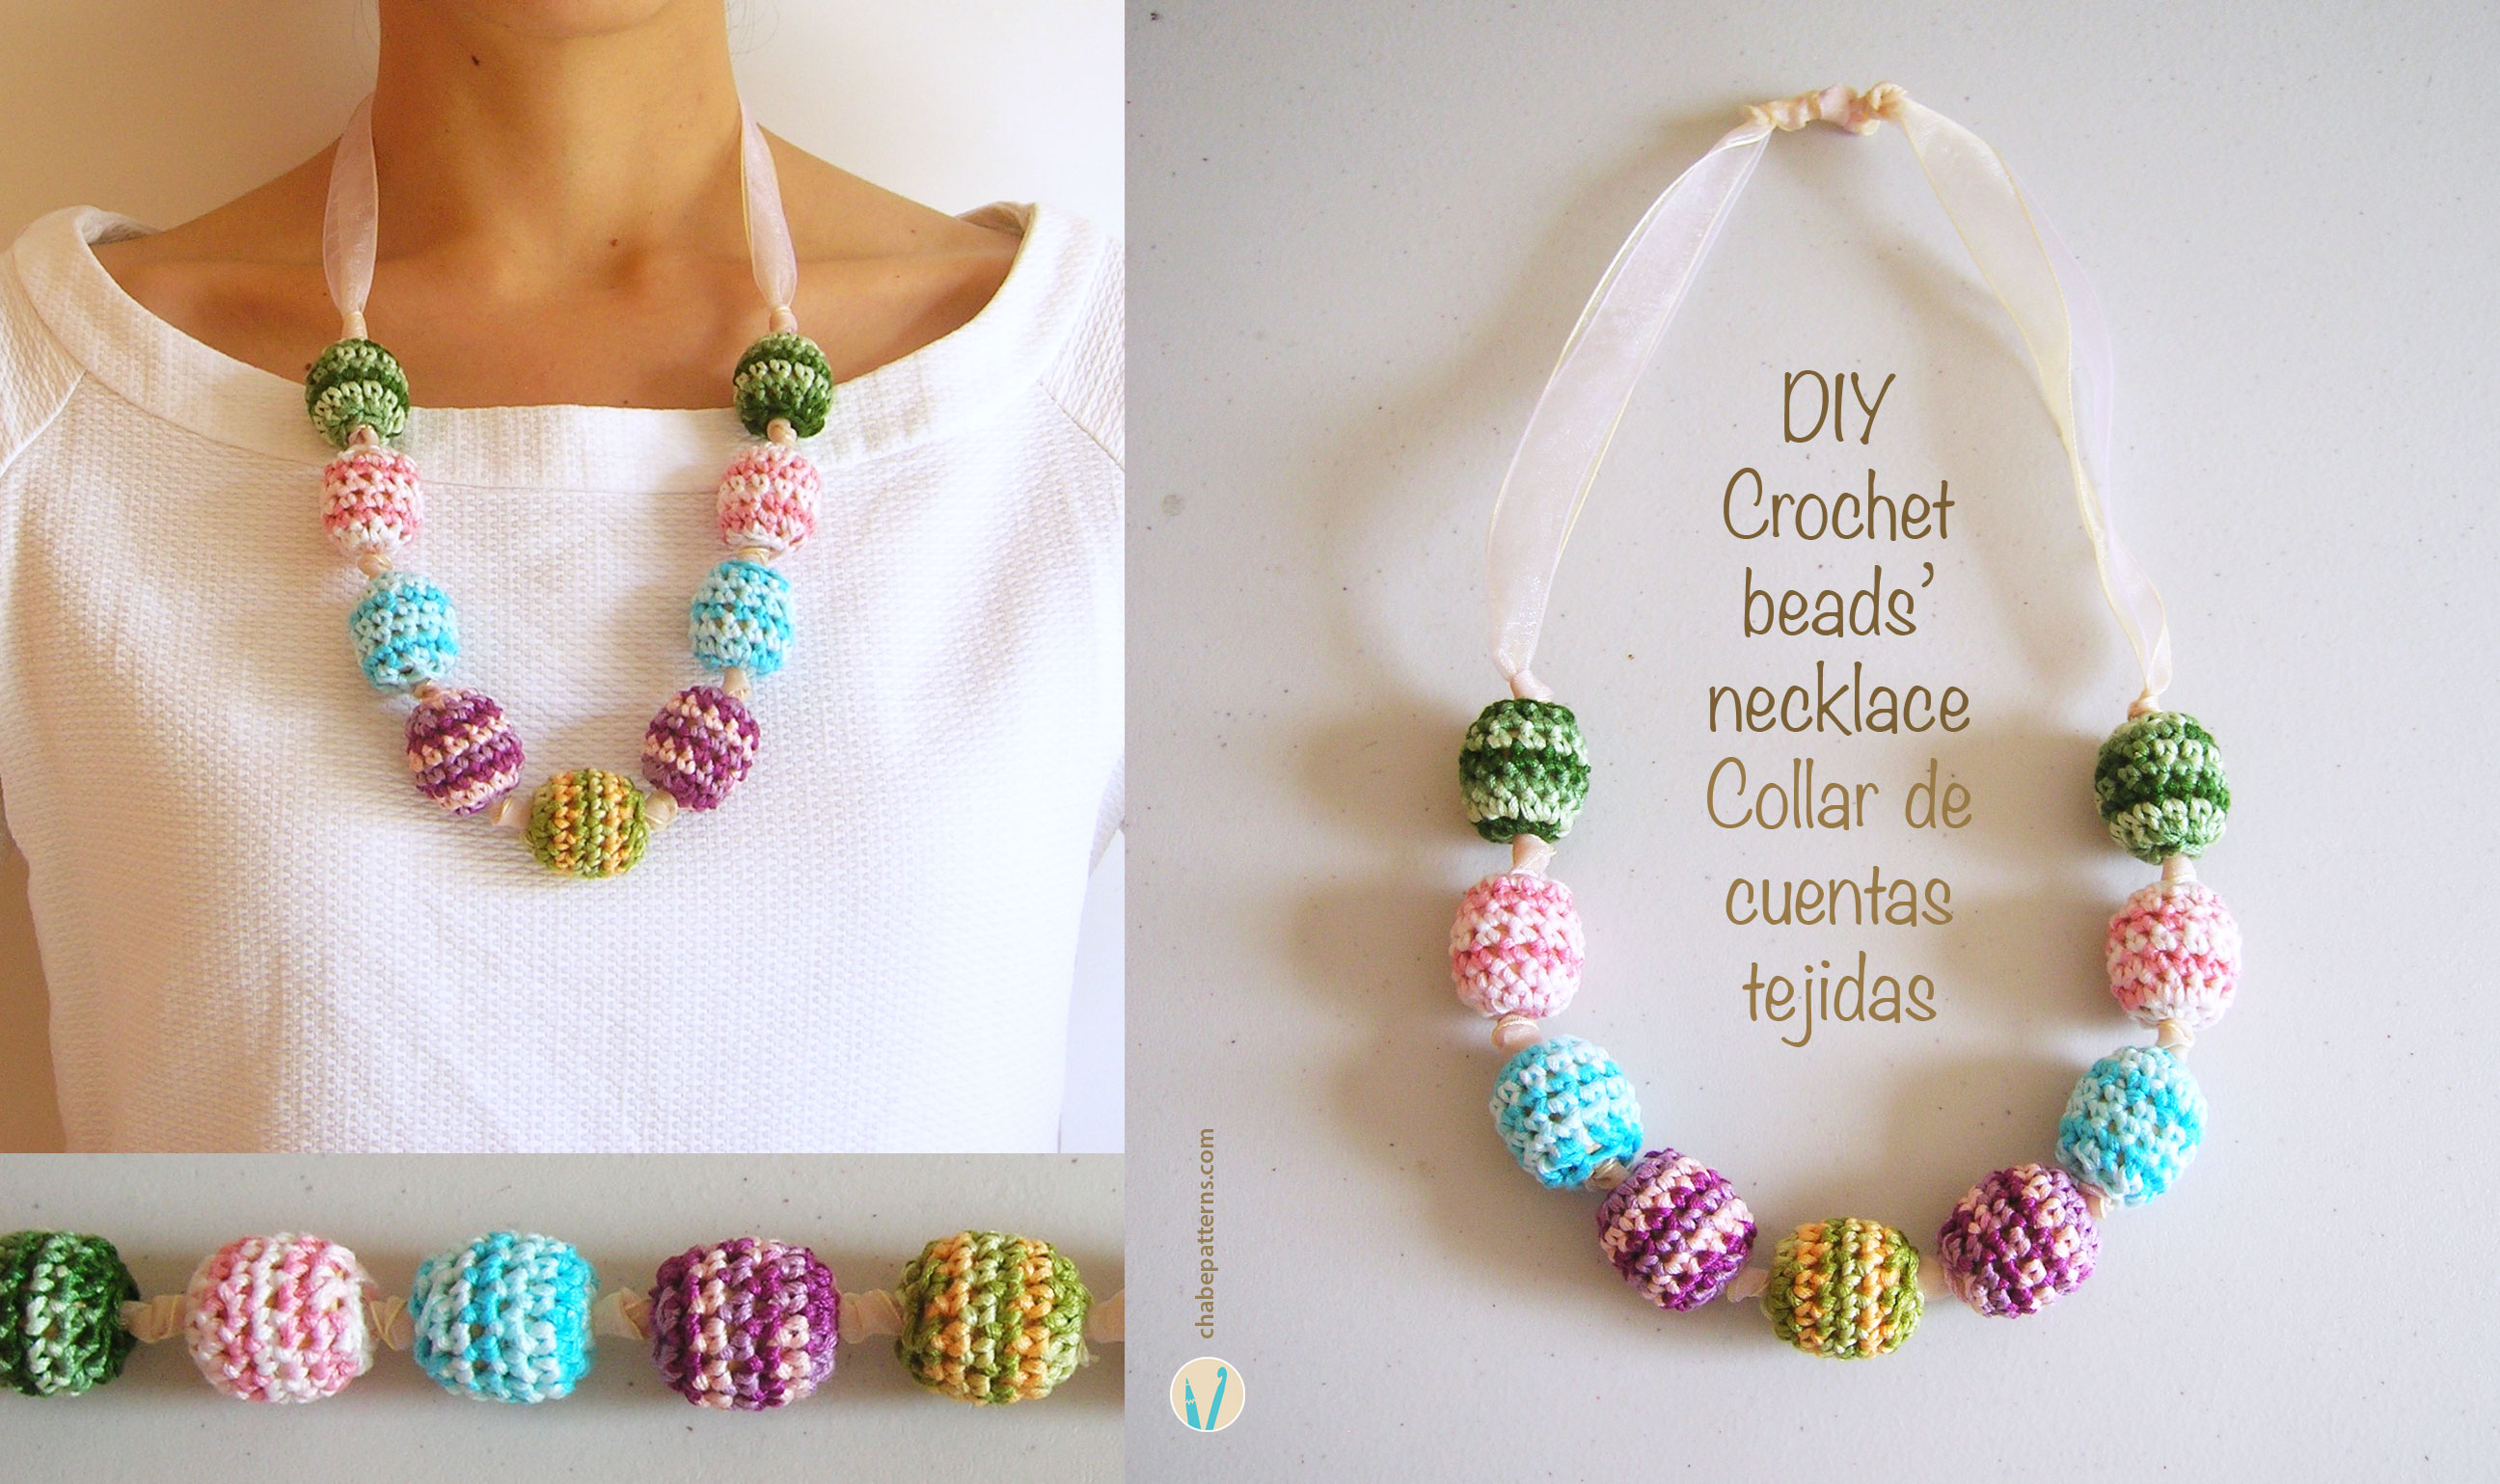 Crochet beads\' necklace/ Collar de cuentas tejidas